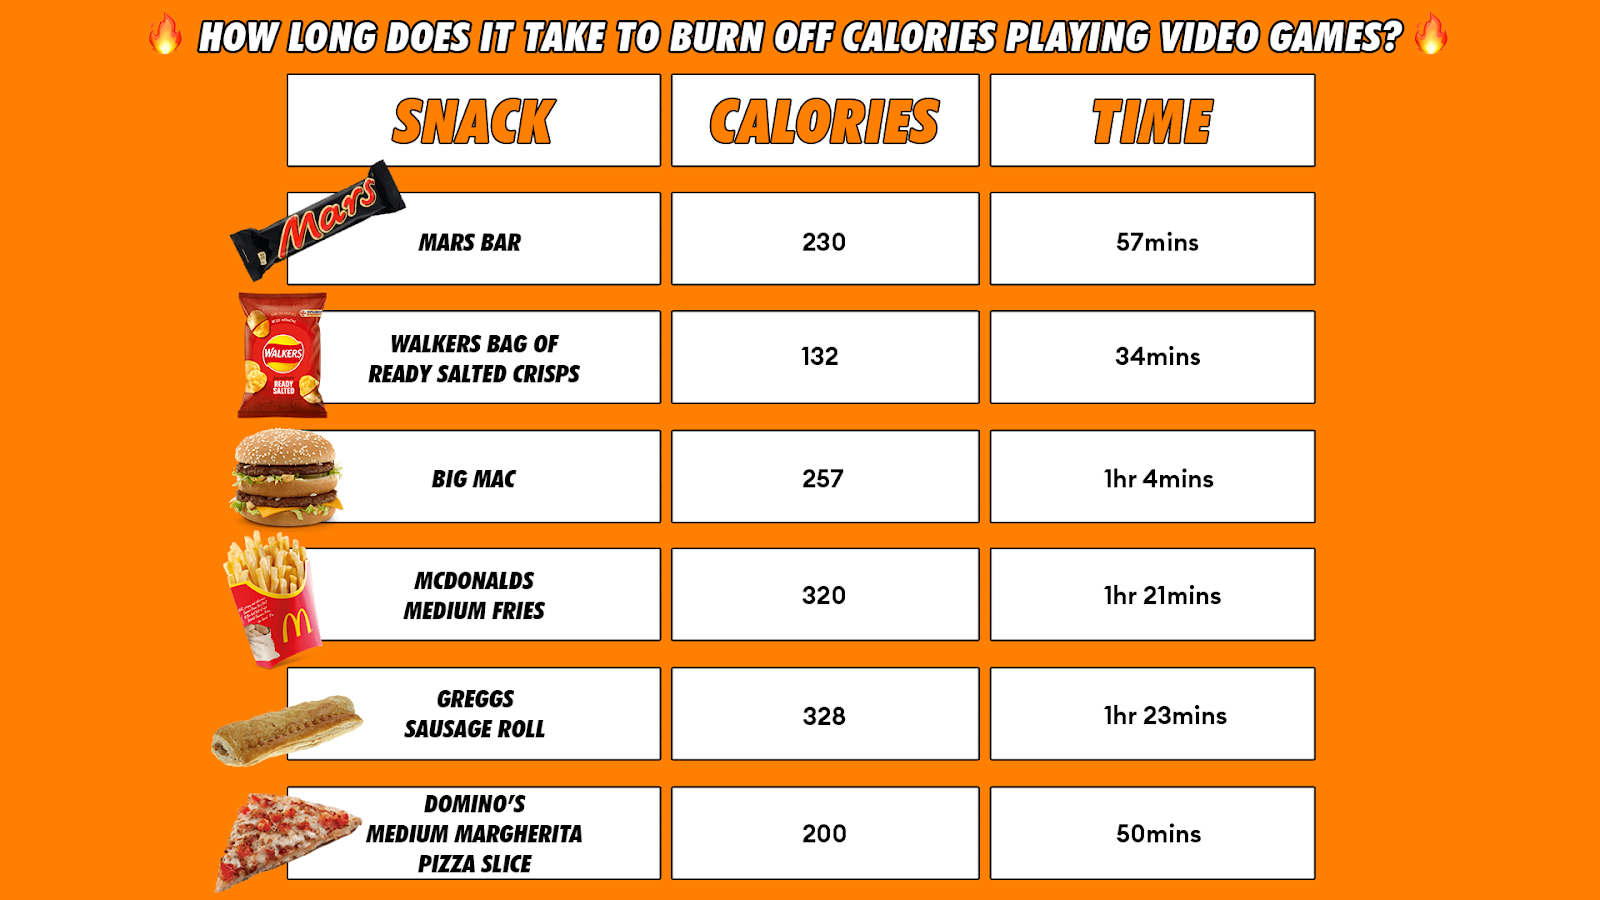 A table which shows the varying time required to burn equivalent calories for different food items.